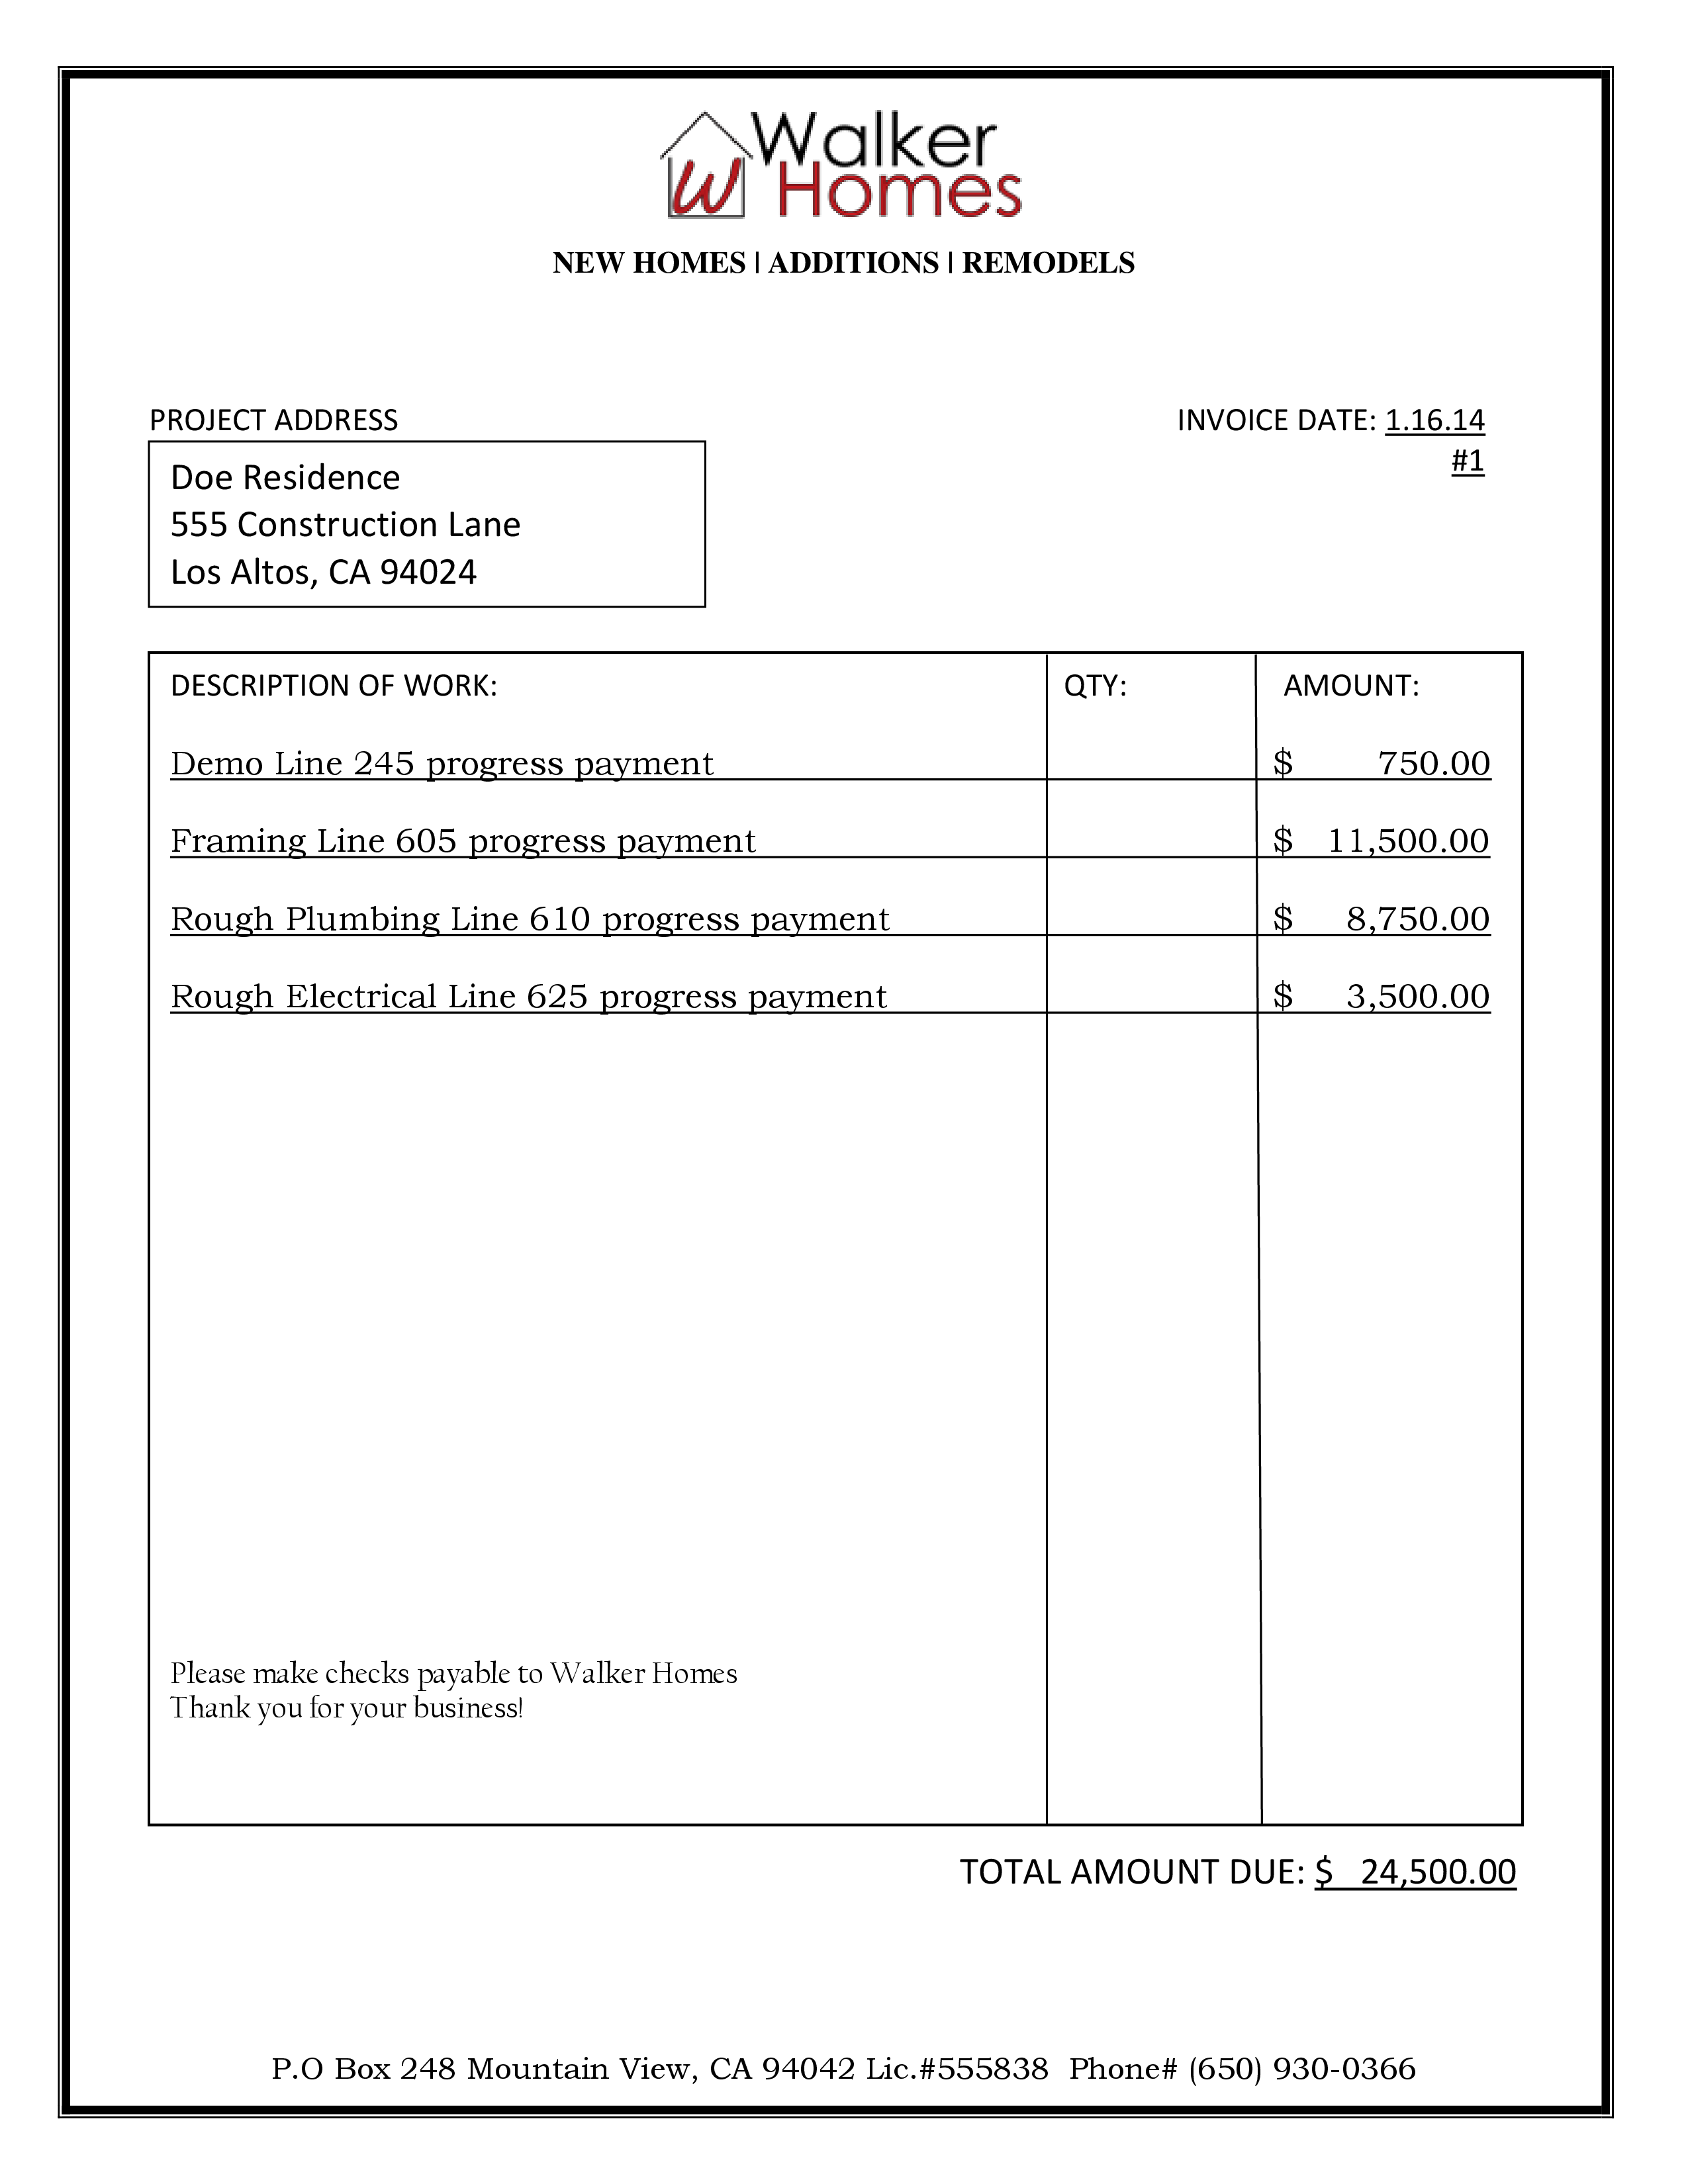 Proatmealus  Unique How To Write A Simple Invoice Sample Survey Questionnaire  With Exquisite Example Of A Invoice Packing Slip Template Graduate Student Cv   With Nice Vehicle Invoice Prices Also Invoice Document Template In Addition Free Printable Blank Invoice And Google Docs Invoices As Well As Landscaping Invoice Template Free Additionally Ups International Commercial Invoice From Sklepco With Proatmealus  Exquisite How To Write A Simple Invoice Sample Survey Questionnaire  With Nice Example Of A Invoice Packing Slip Template Graduate Student Cv   And Unique Vehicle Invoice Prices Also Invoice Document Template In Addition Free Printable Blank Invoice From Sklepco